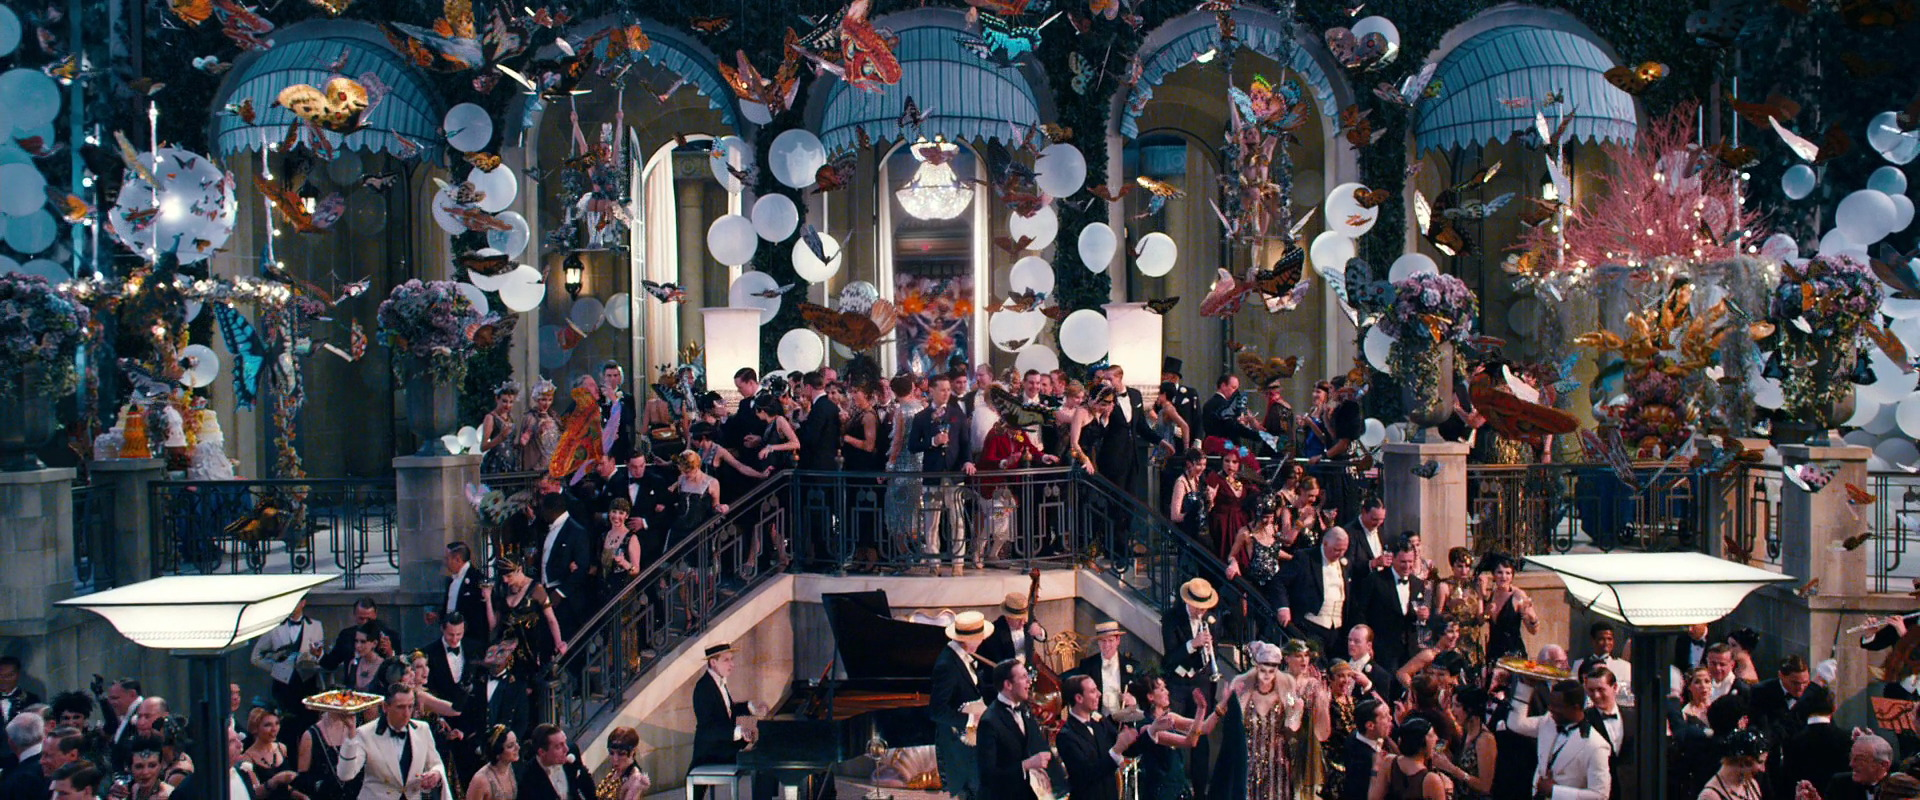 great-gatsby-movie-screencaps.com-2986.jpg